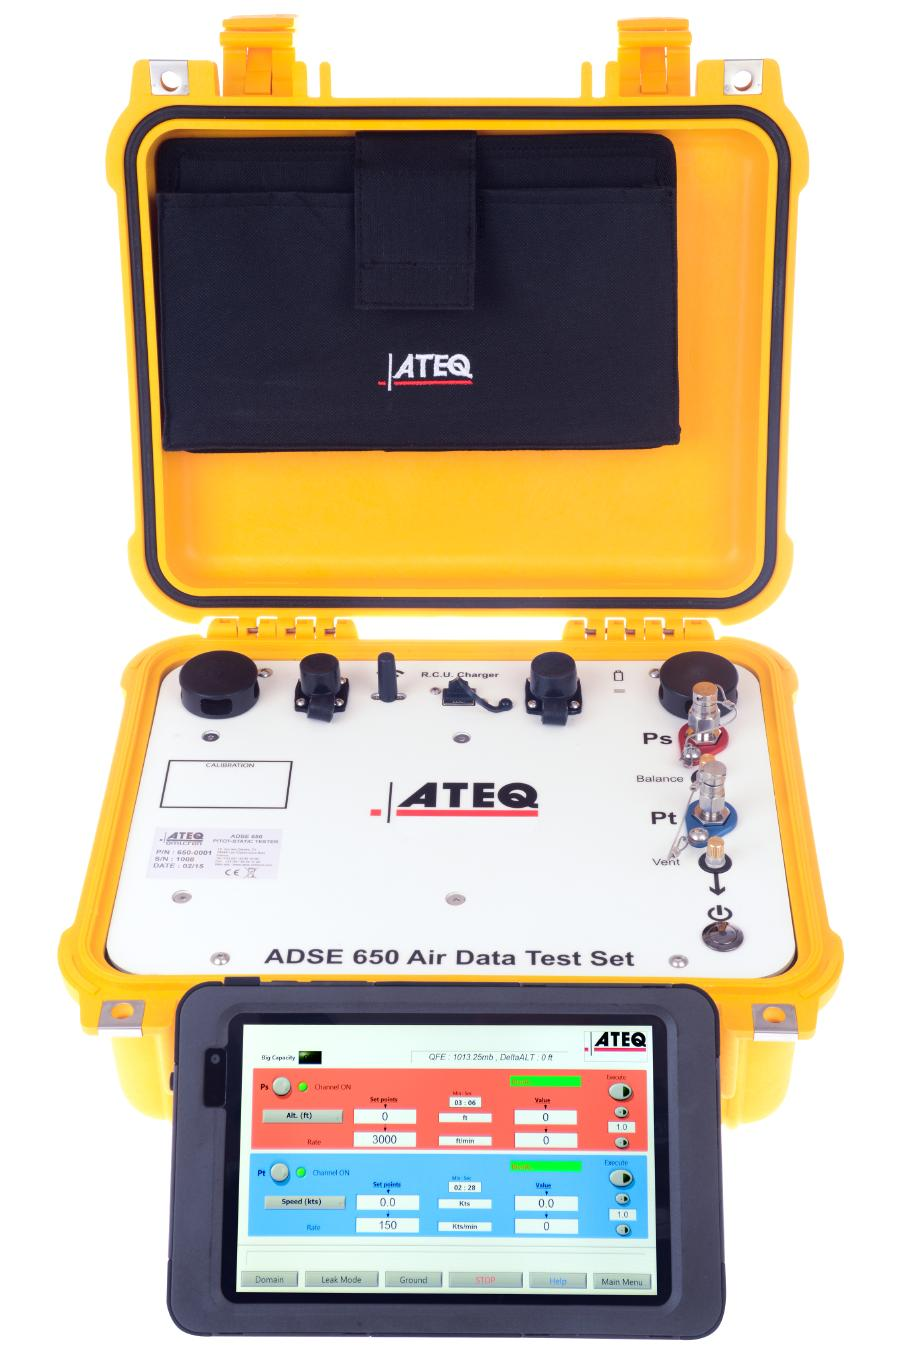 ateq aviation division air data test set pitot static testers and electrical testers for. Black Bedroom Furniture Sets. Home Design Ideas